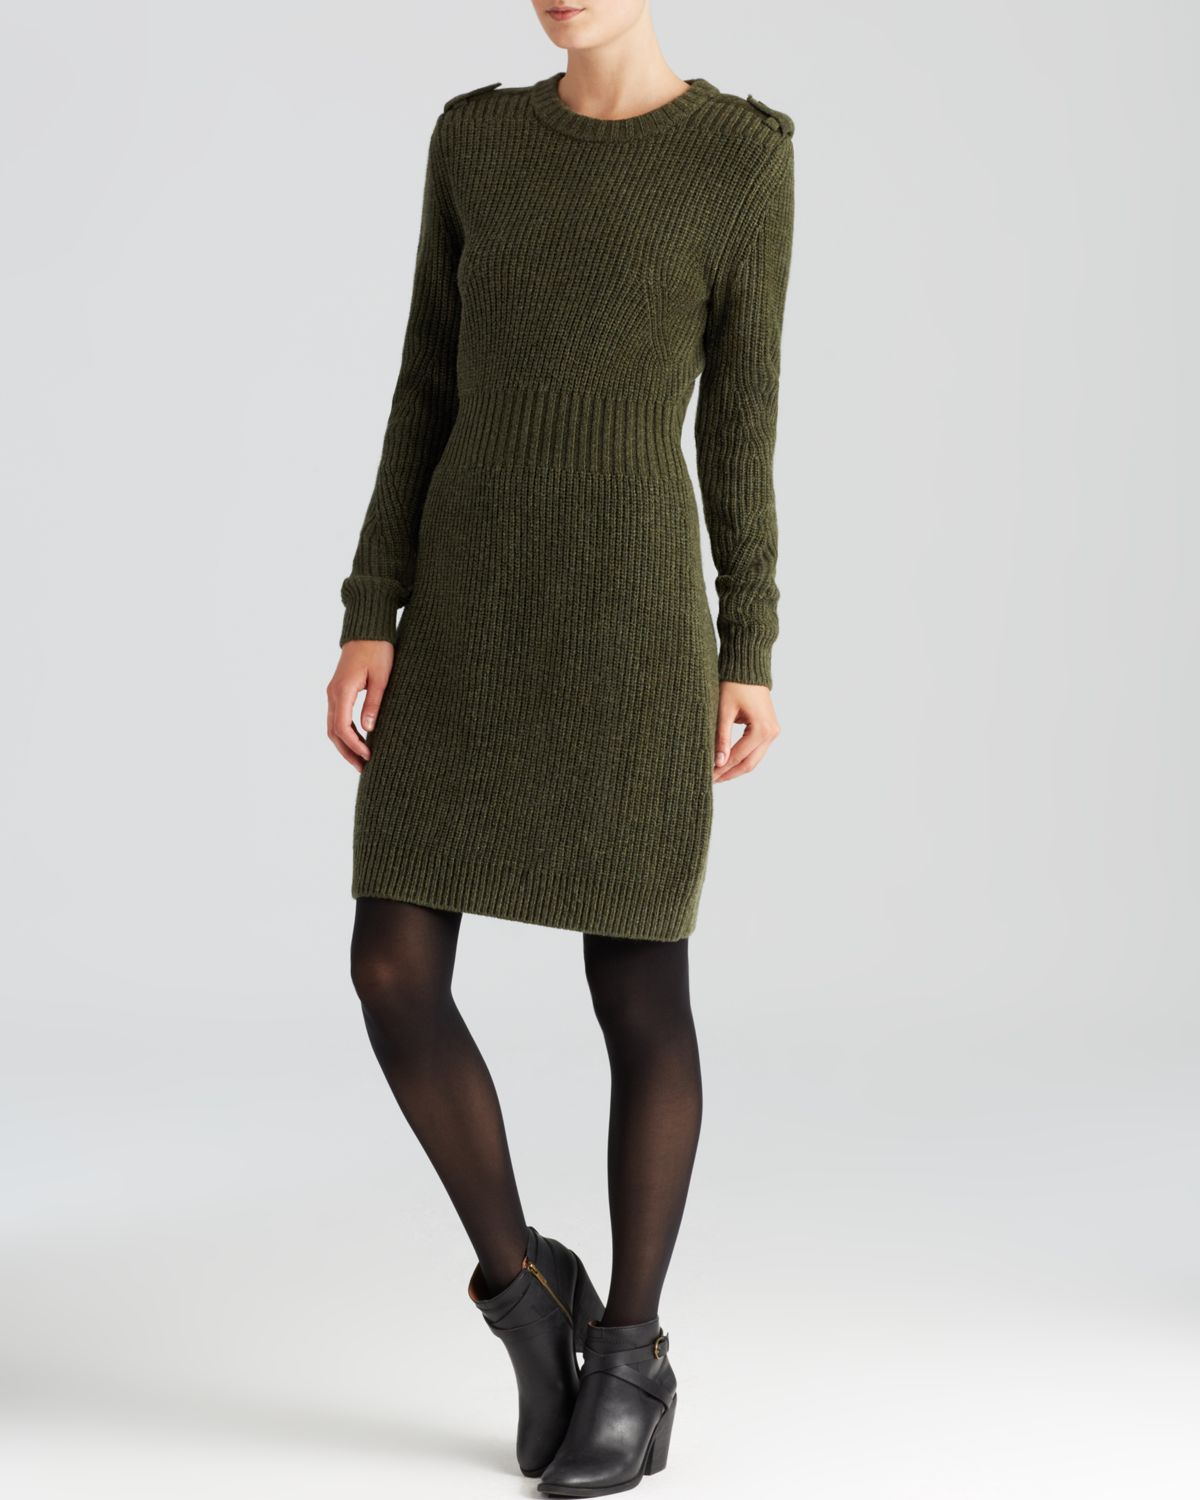 marc by marc jacobs sweater dress benjamine in green lyst. Black Bedroom Furniture Sets. Home Design Ideas